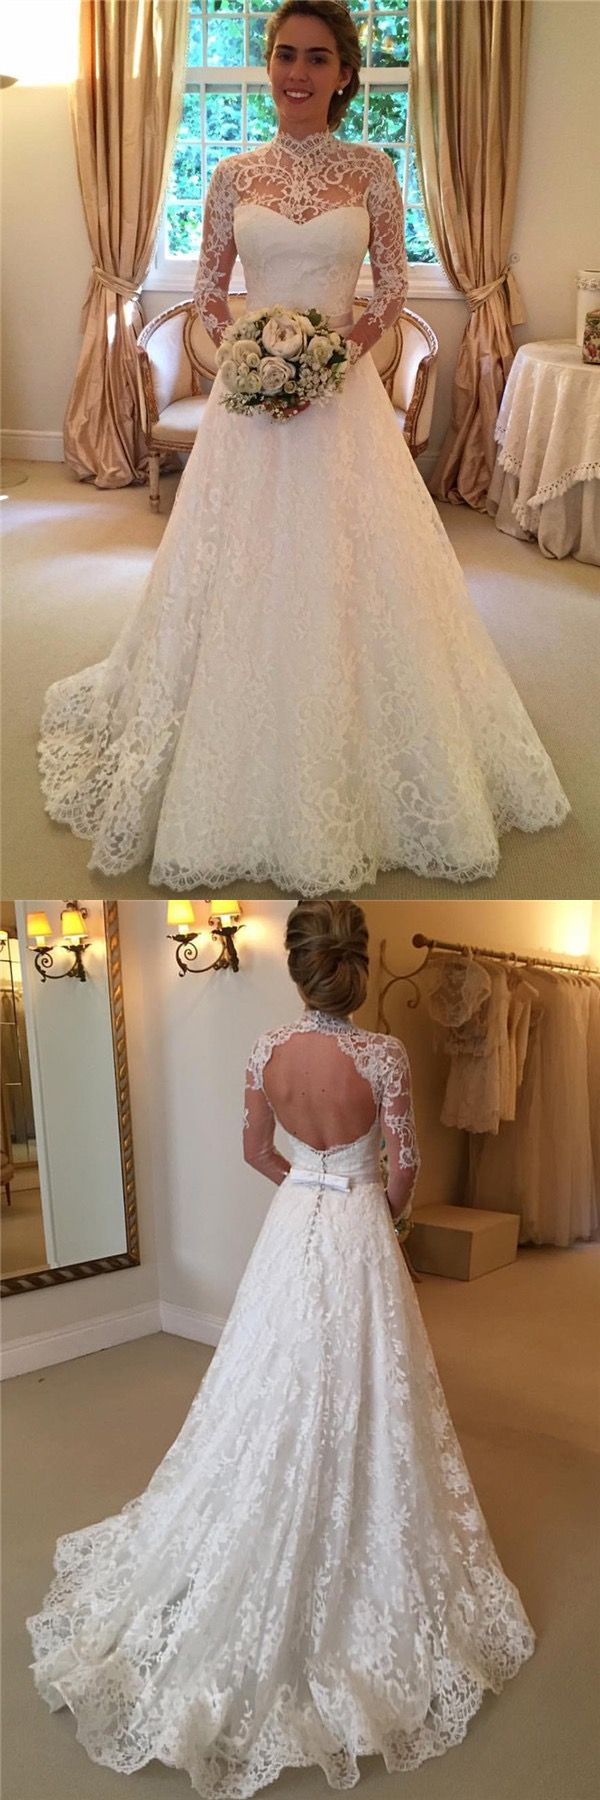 vintage high neck wedding dress with bowknot, elegant long sleeves wedding dresses with lace, affordable open back bridal gowns with sleeves